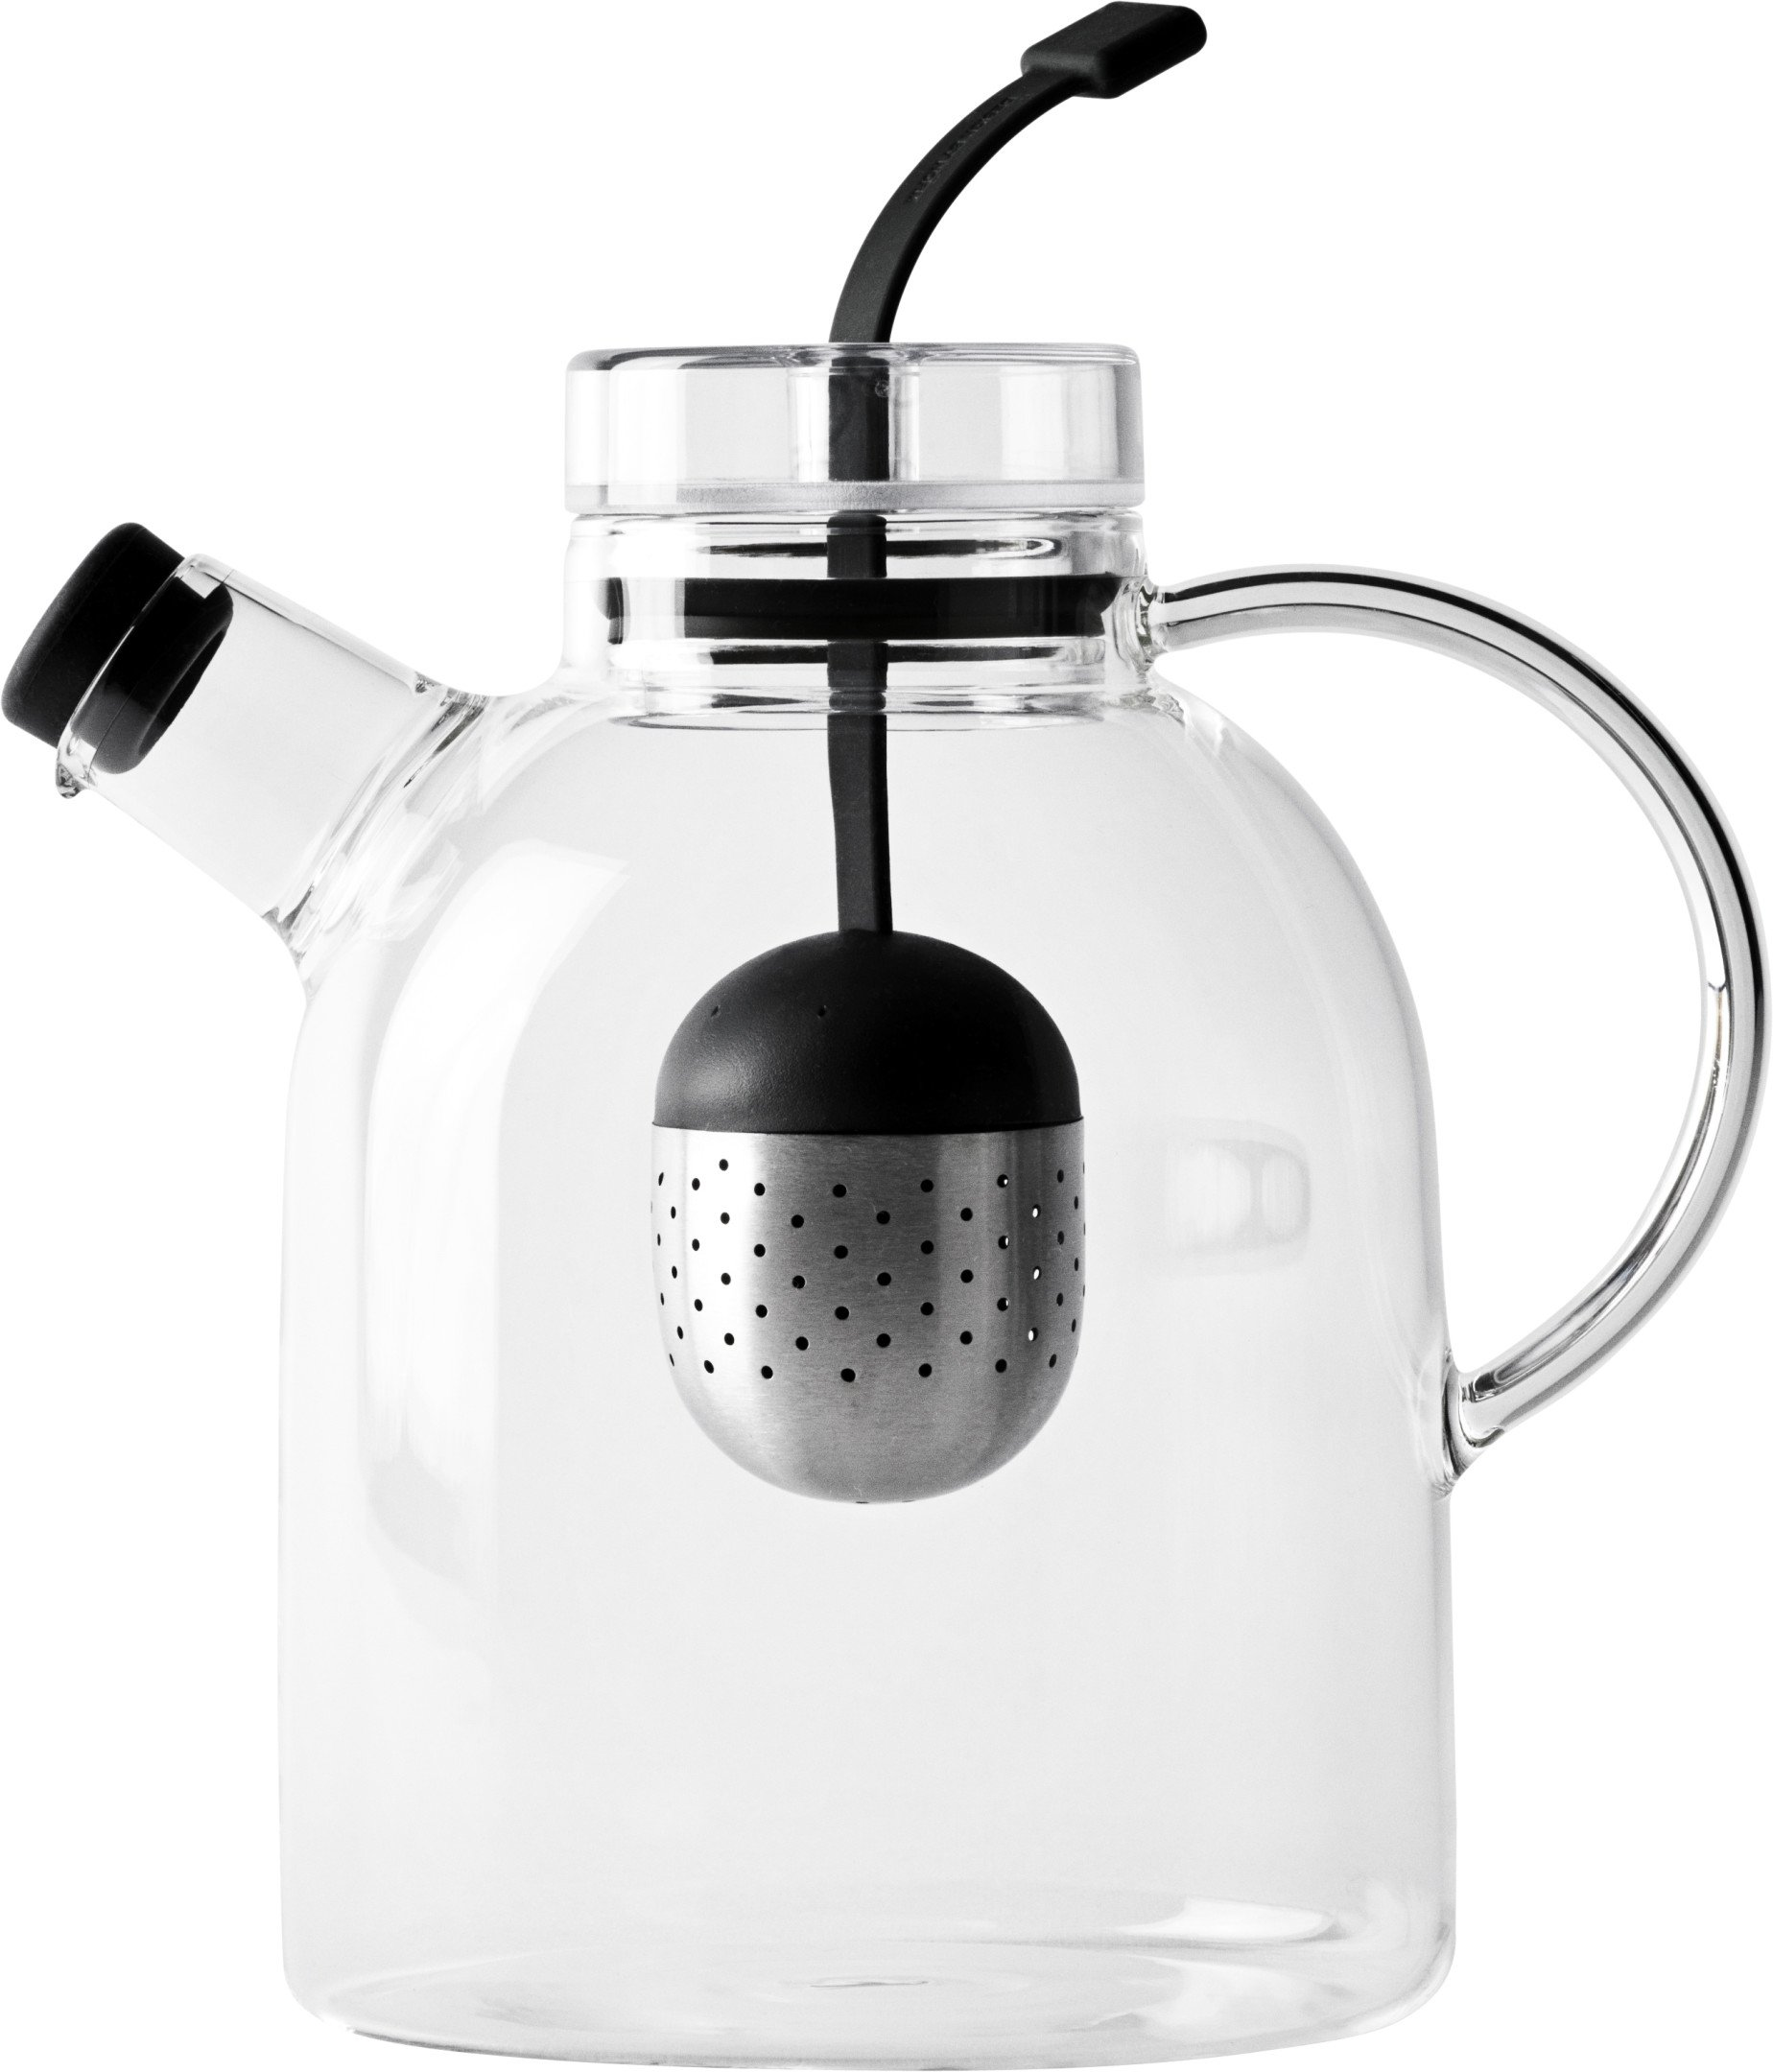 Kettle Teapot 1.5L, by Norm Architects for Menu